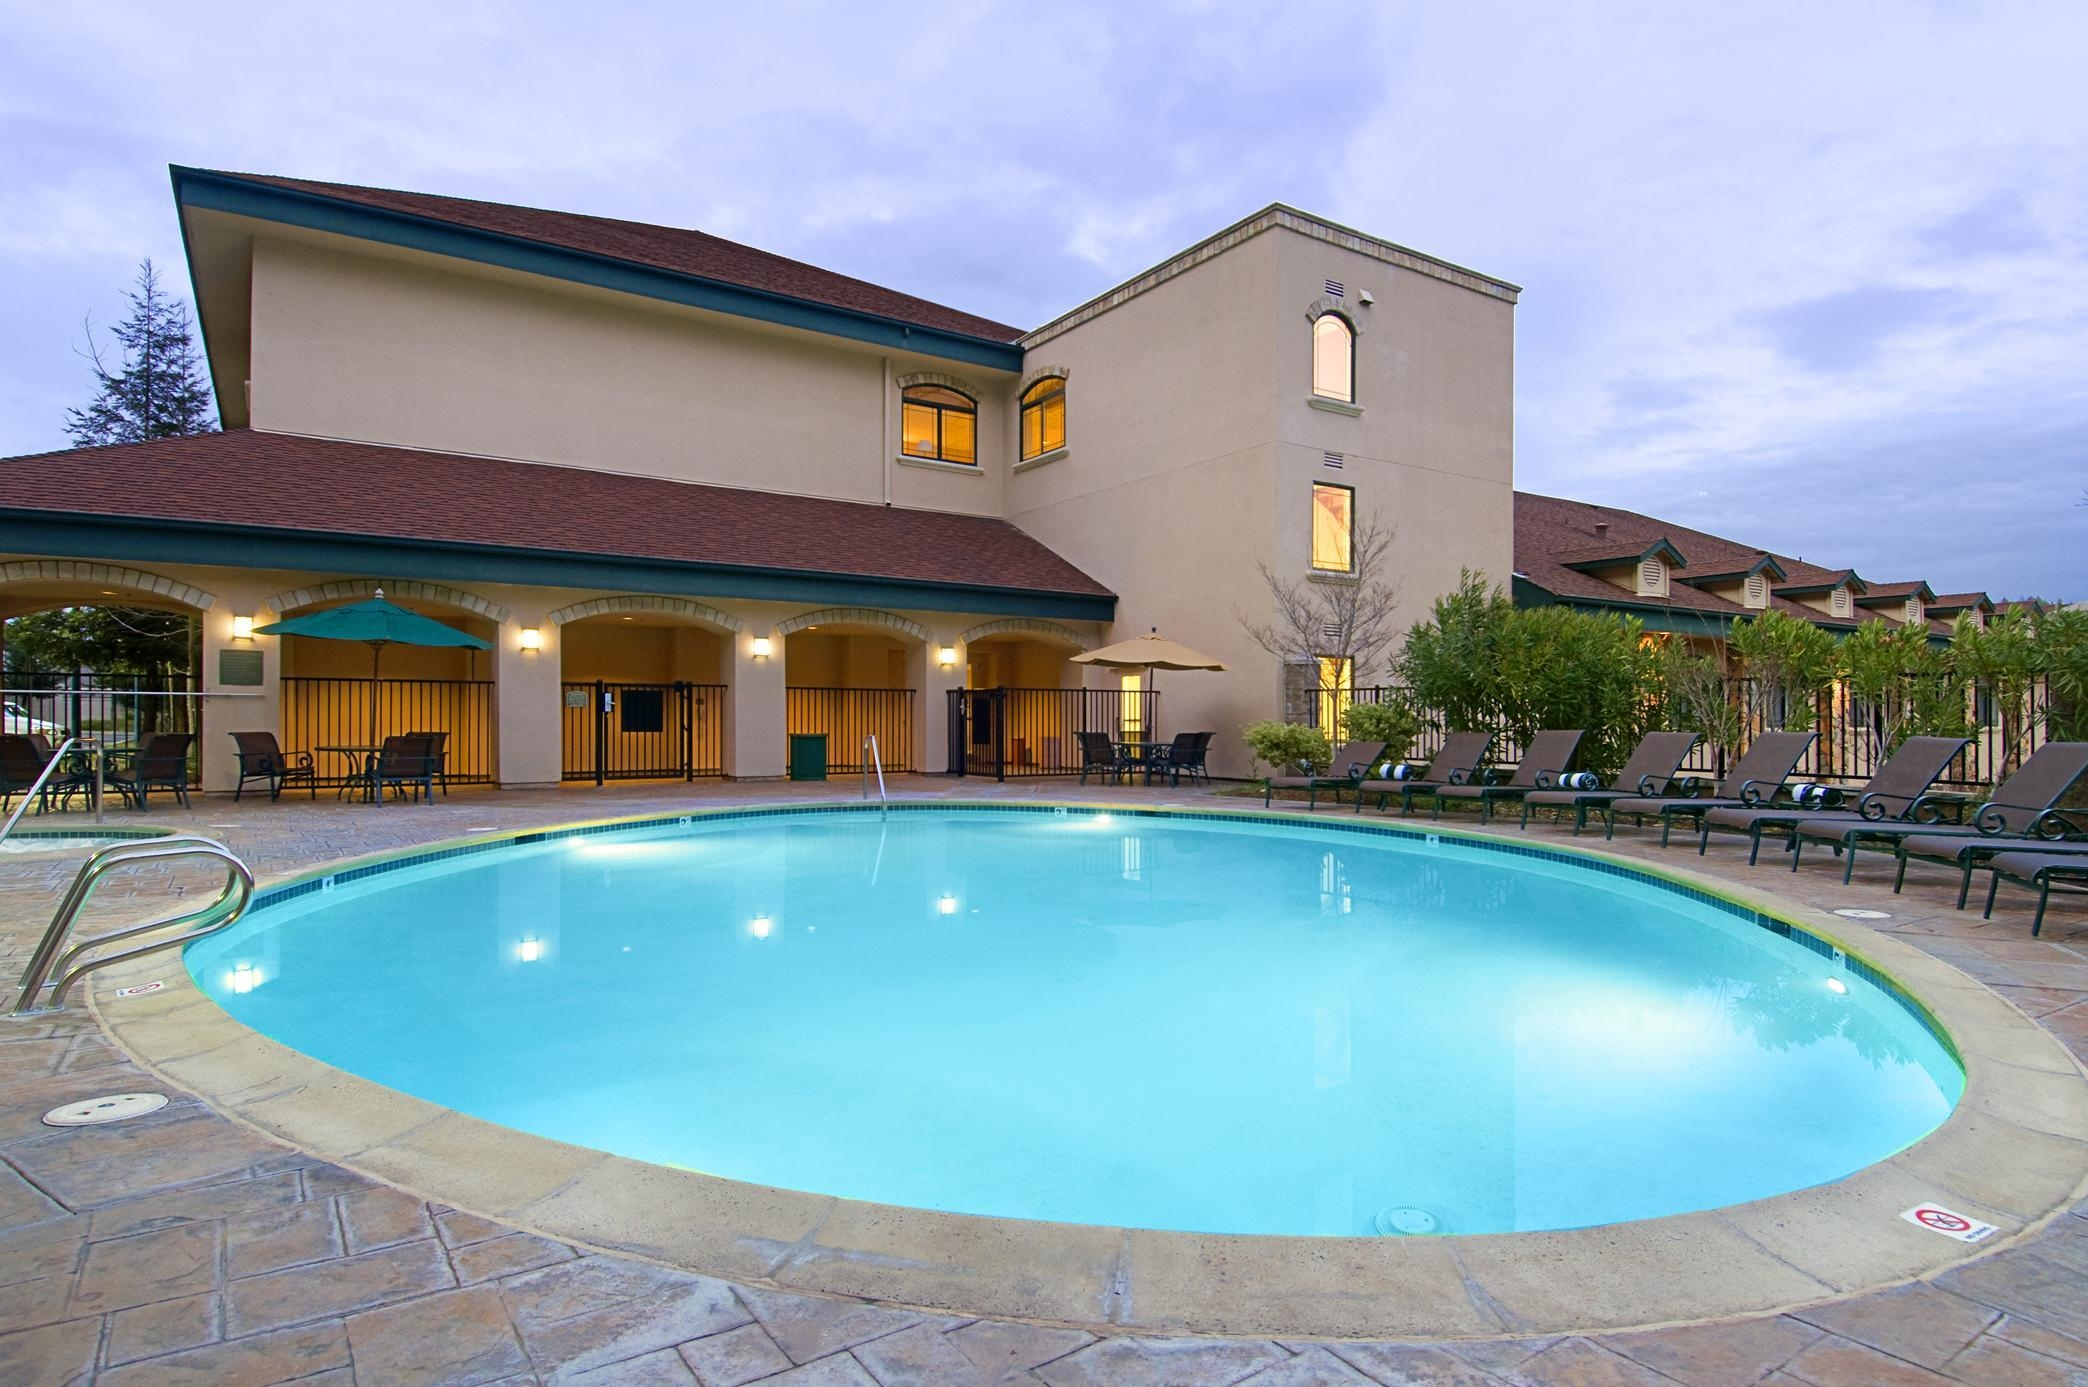 Scotts Valley Ca Motels And Hotels